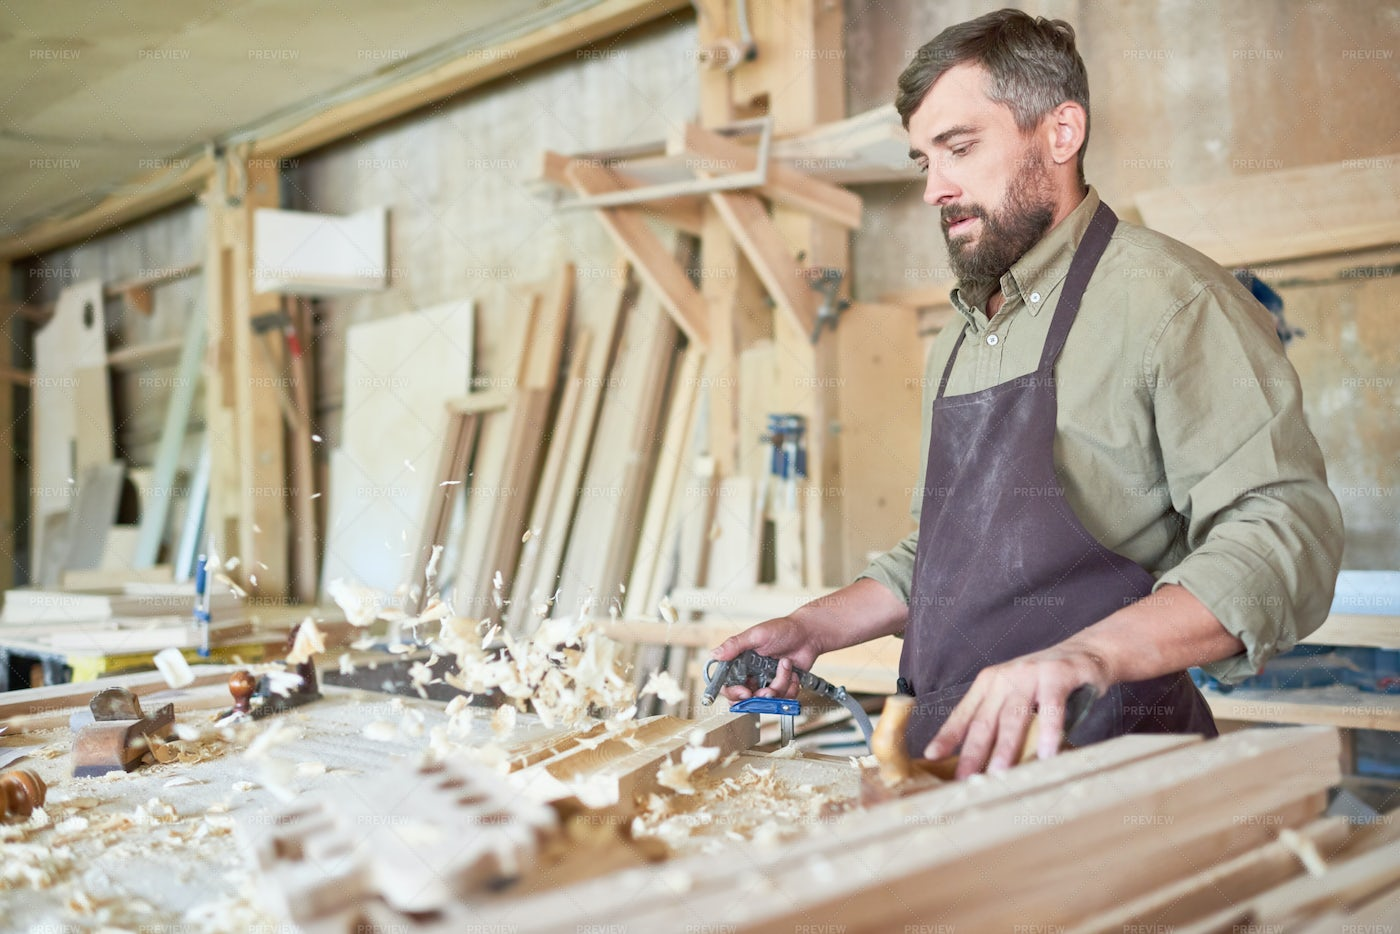 Craftsman In Joinery Shop: Stock Photos